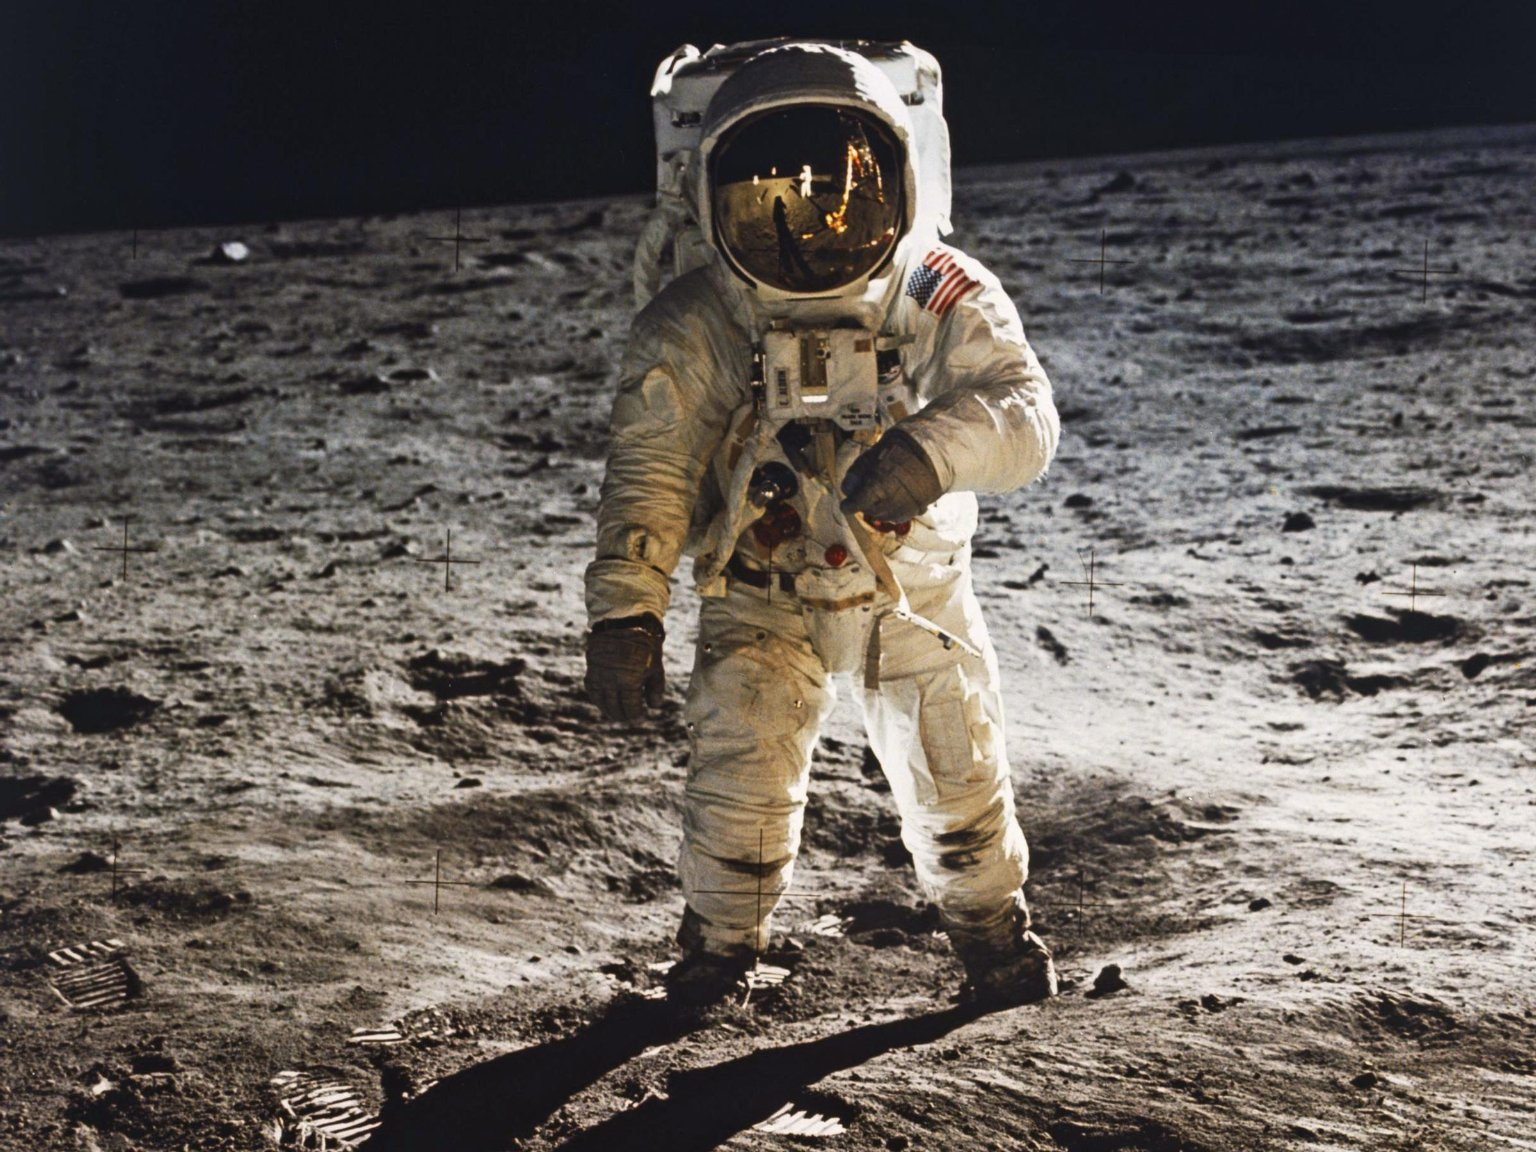 Moonwalker Buzz Aldrin Turns Down Free Space Trip